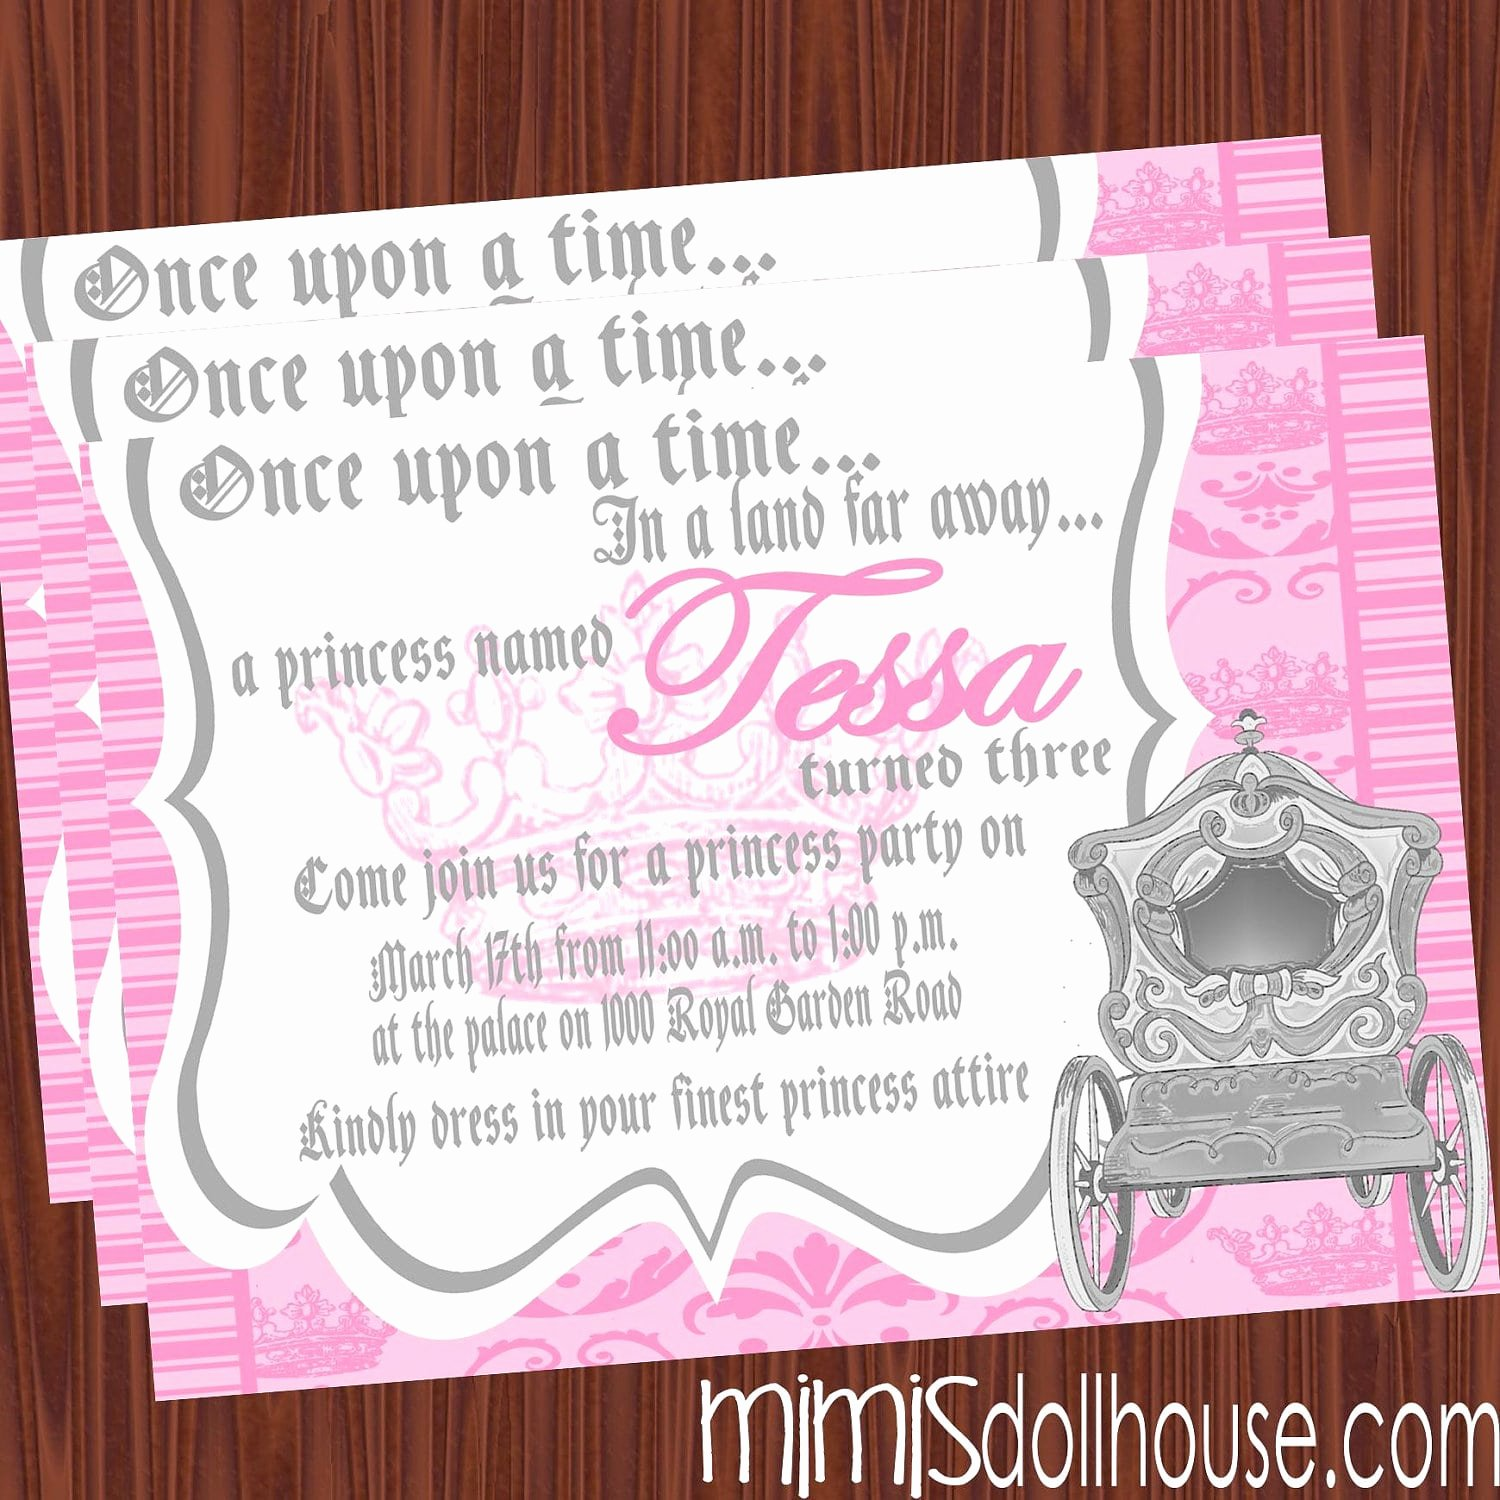 Princess Party Invitation Wording Unique Invitation for Princesses Party